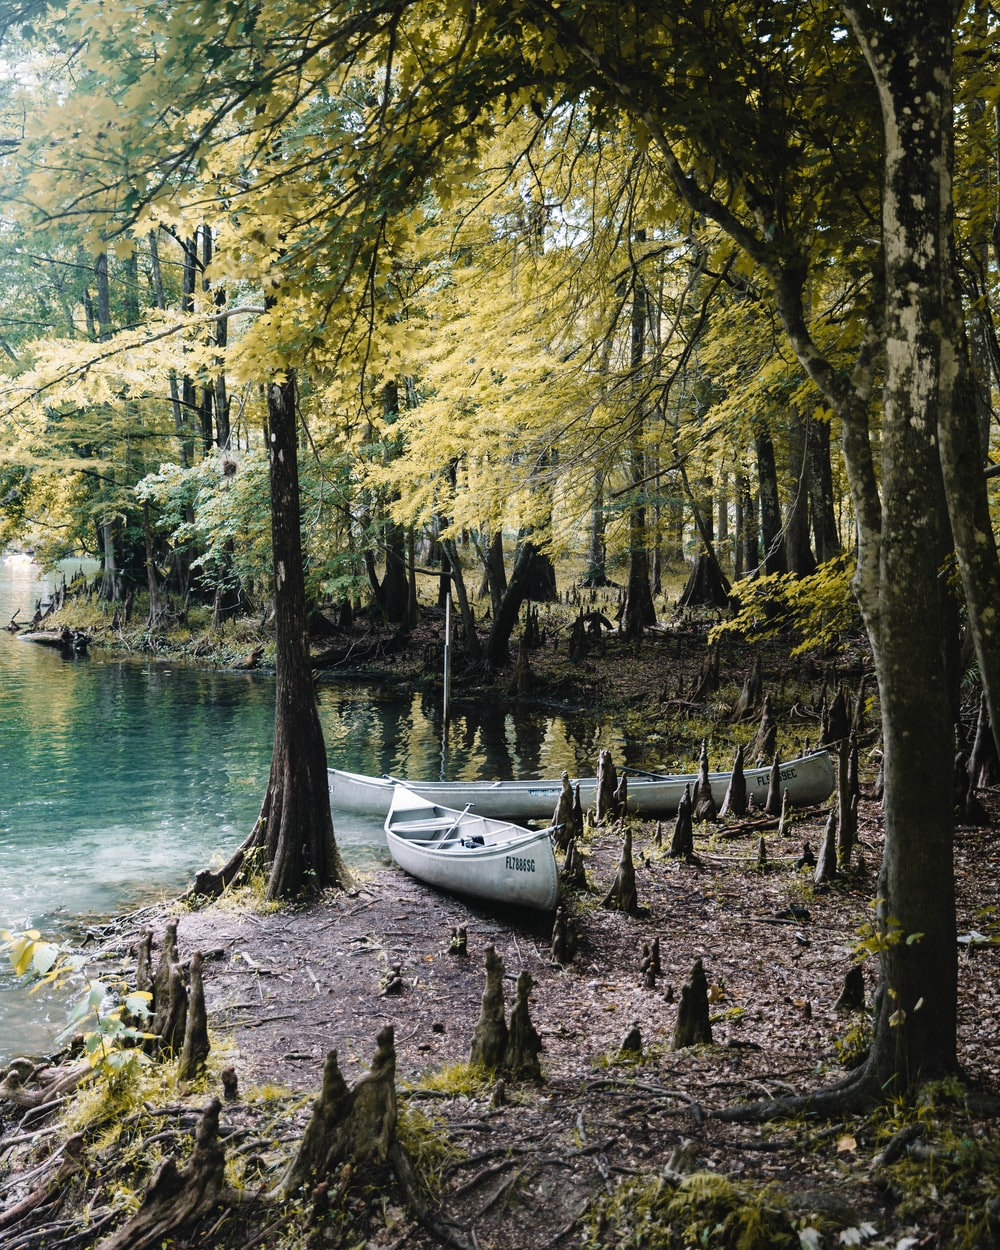 two gray canoes beside green trees